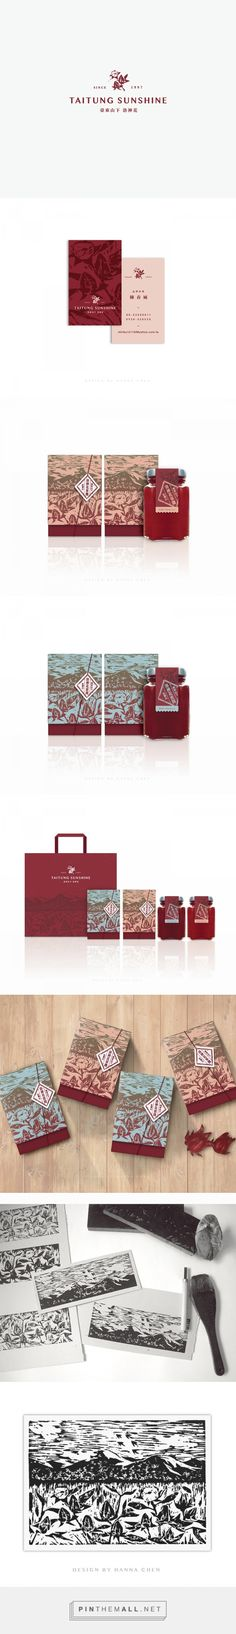 Branding, graphic design, illustration and packaging for Ruby Roselle package design on Behance by Hanna Chen Taichang, Taiwan curated by Packaging Diva PD. Taitung Sunshine lovely packaging.